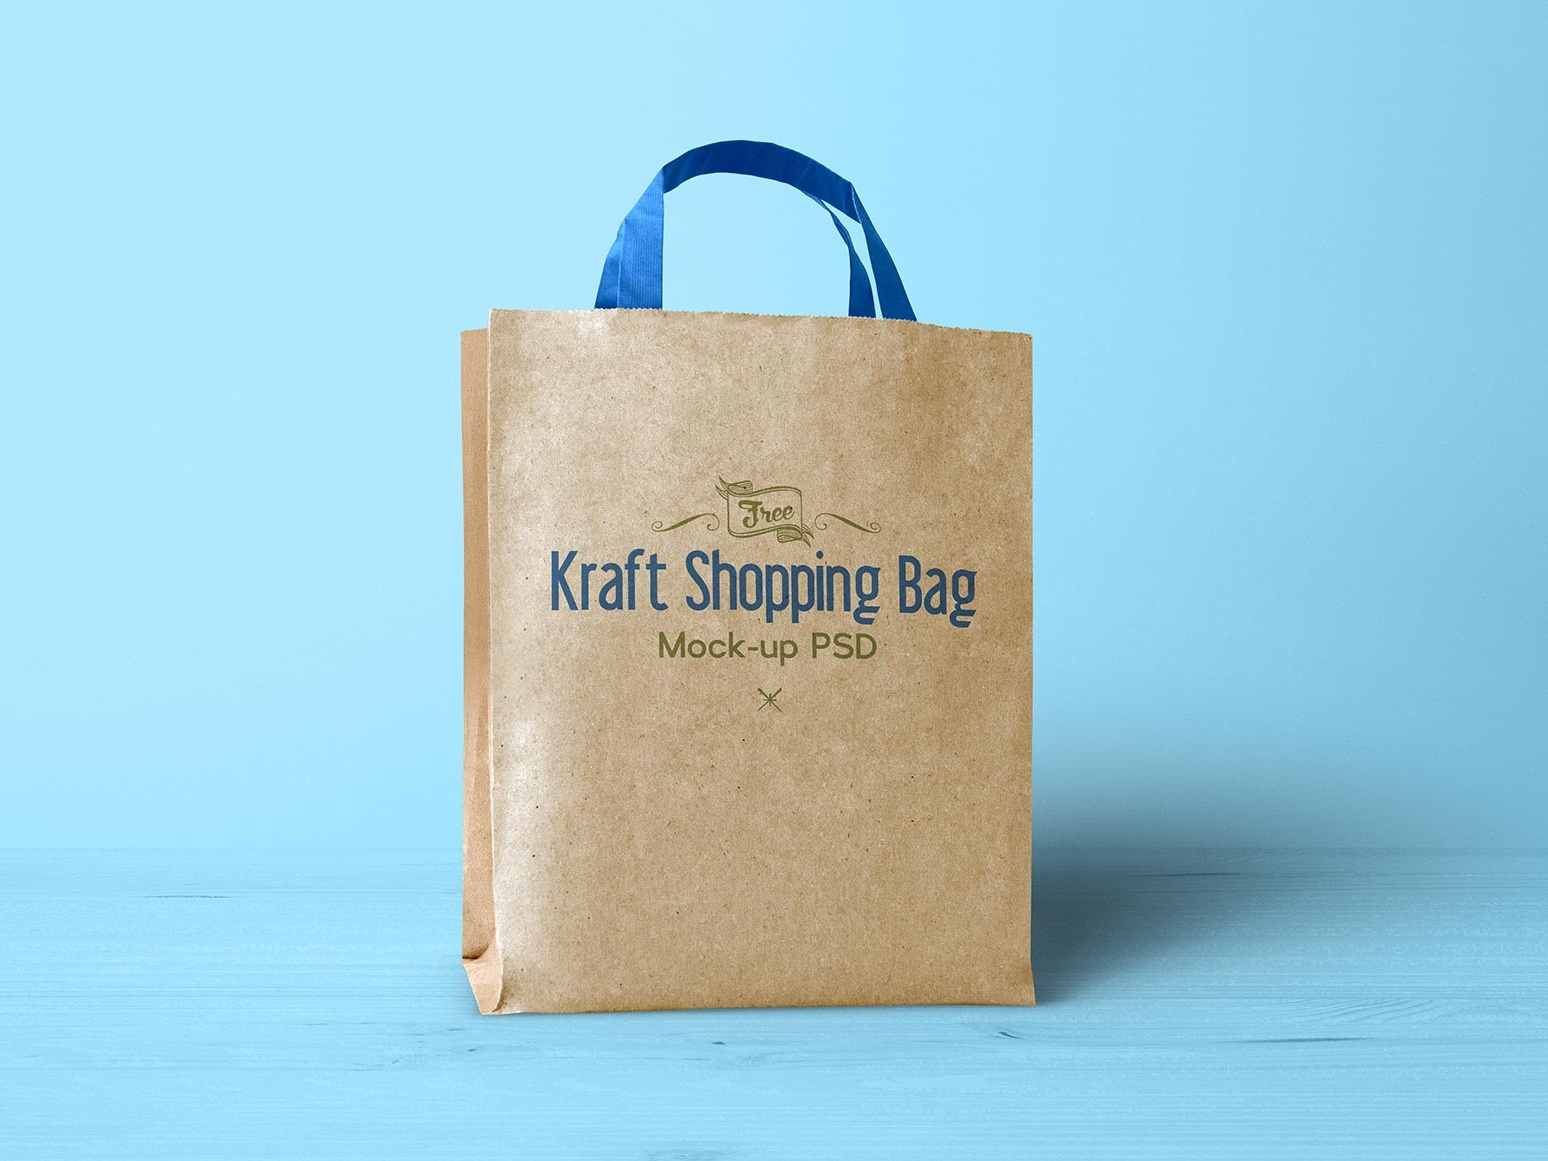 Free Kraft Paper Shopping Bag Mockup PSD brown bag mockup bag mociup free download mock-up free psd psd mockup freebie free mockup psd mockup mockup psd paper bag mockup bag mockup shopping bag mockup